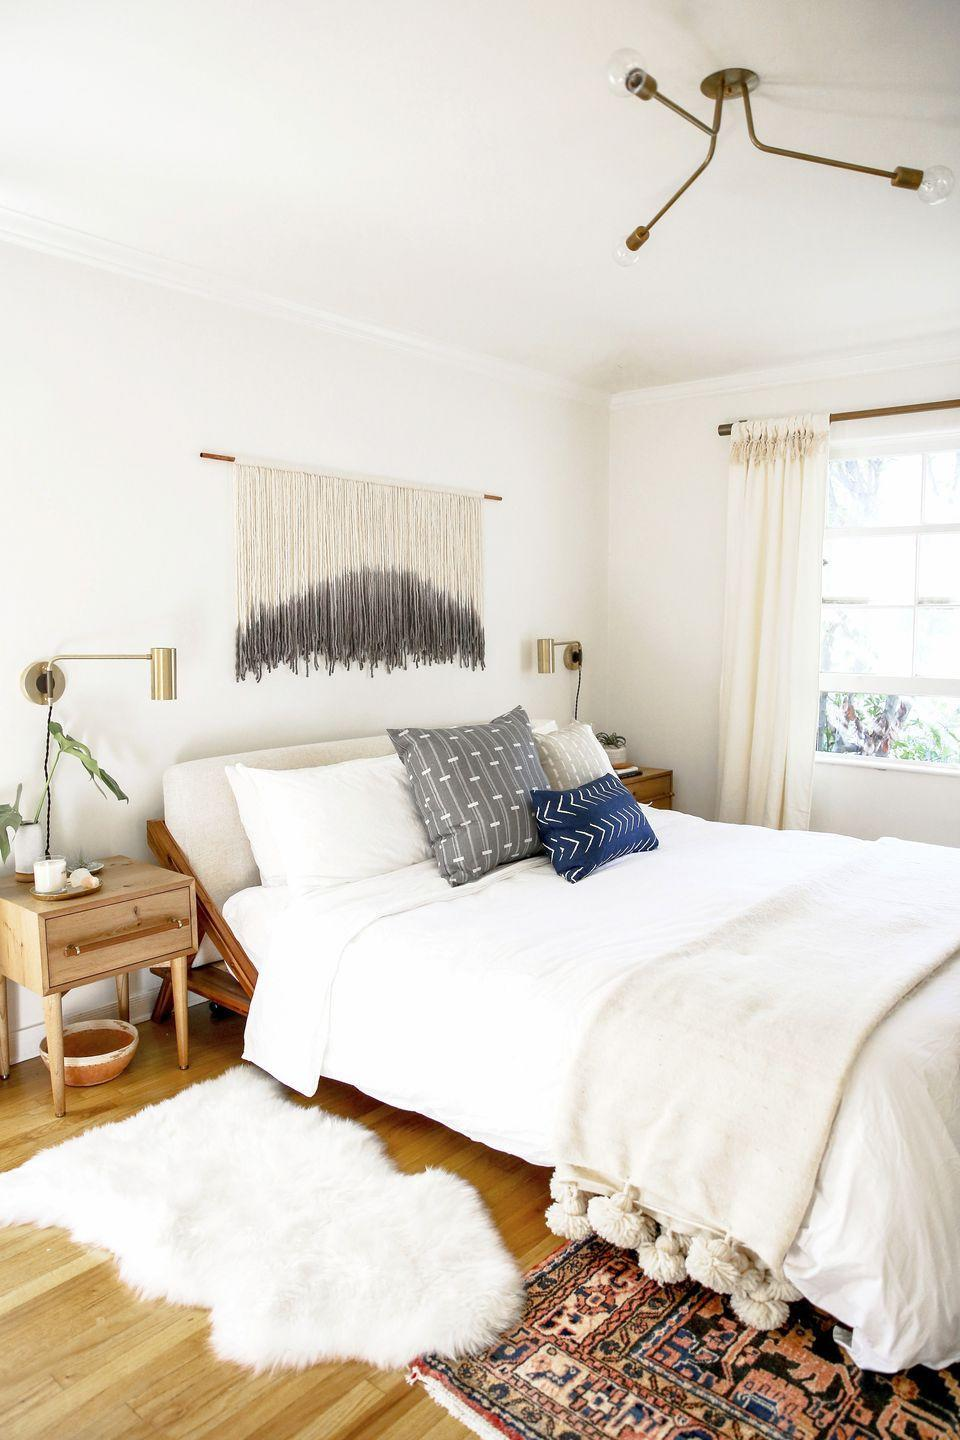 "<p>To add personality to a neutral bedroom, bring in texture, advises interior designer Sarah Sherman Samuel. ""You can layer in decor pieces in a variety of fabrics and materials form the floor up to the walls to give any space dimension,"" she says. ""I love working in materials like wood, leather, wool, and sheepskin."" </p><p><a href=""https://www.goodhousekeeping.com/home/decorating-ideas/g1500/decor-ideas-living-room/"" rel=""nofollow noopener"" target=""_blank"" data-ylk=""slk:RELATED: 50+ Inspiring Living Room Decorating Ideas"" class=""link rapid-noclick-resp""><strong>RELATED</strong>: 50+ Inspiring Living Room Decorating Ideas</a></p>"